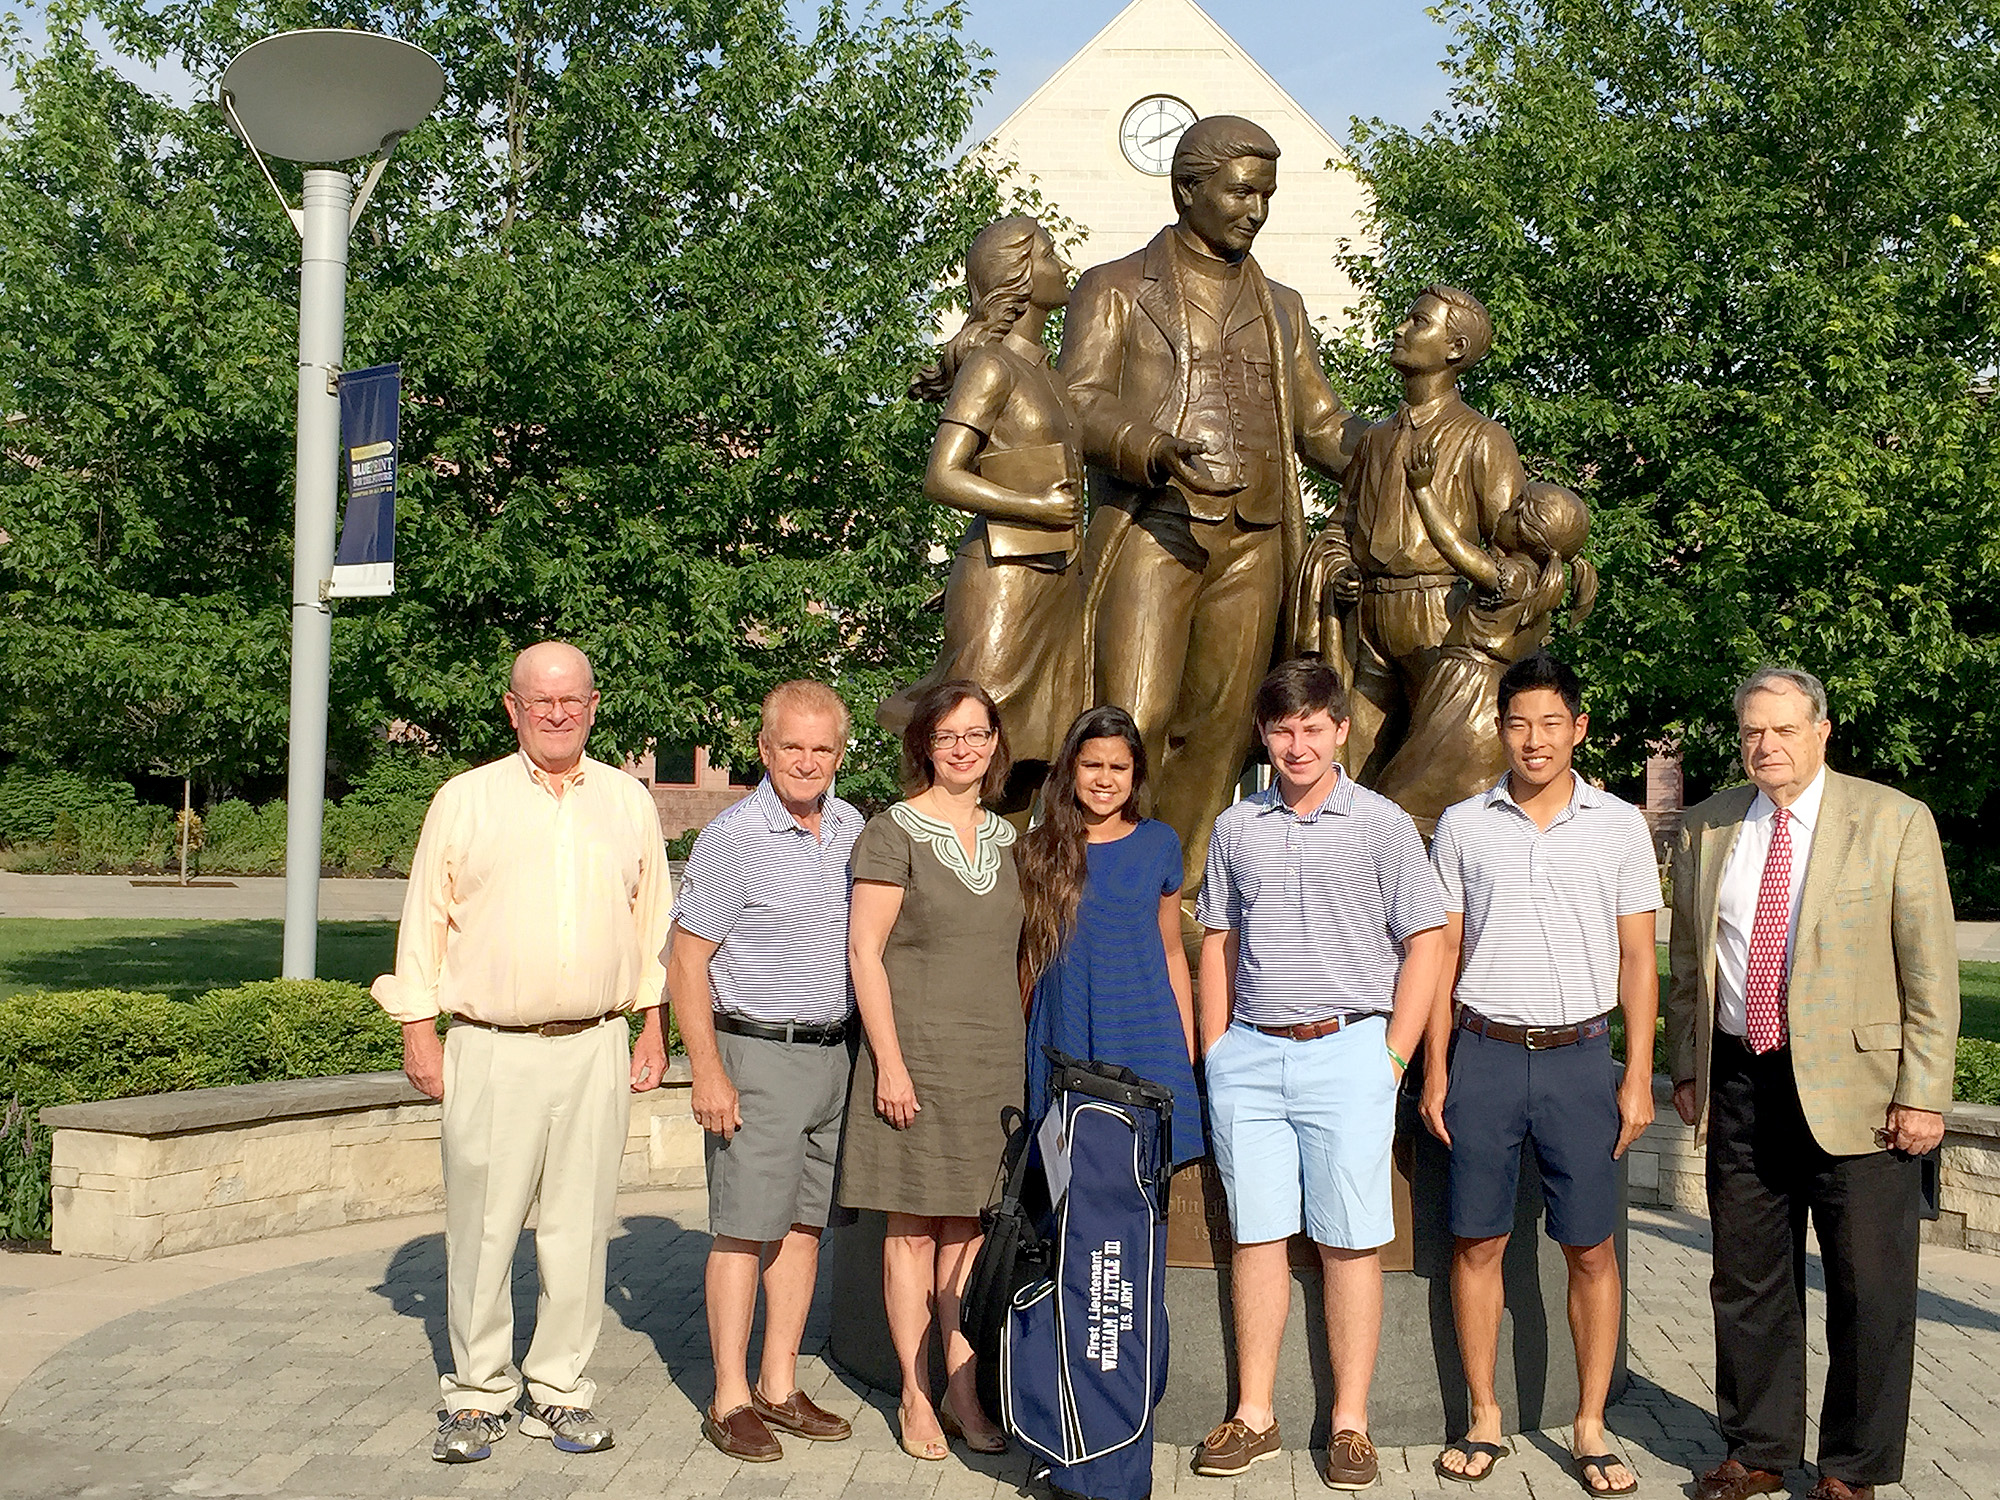 (above l-r) Bruce Morrison '64, Boys' Golf Team Head Coach Joe Forte, Alison Little '82 and her daughter Julia Saksena '22 (Mountainside), Boys' Golf Team Co-Captains Jake Mayer '17 and Justin Chae '16, and Miller Bugliari '52.